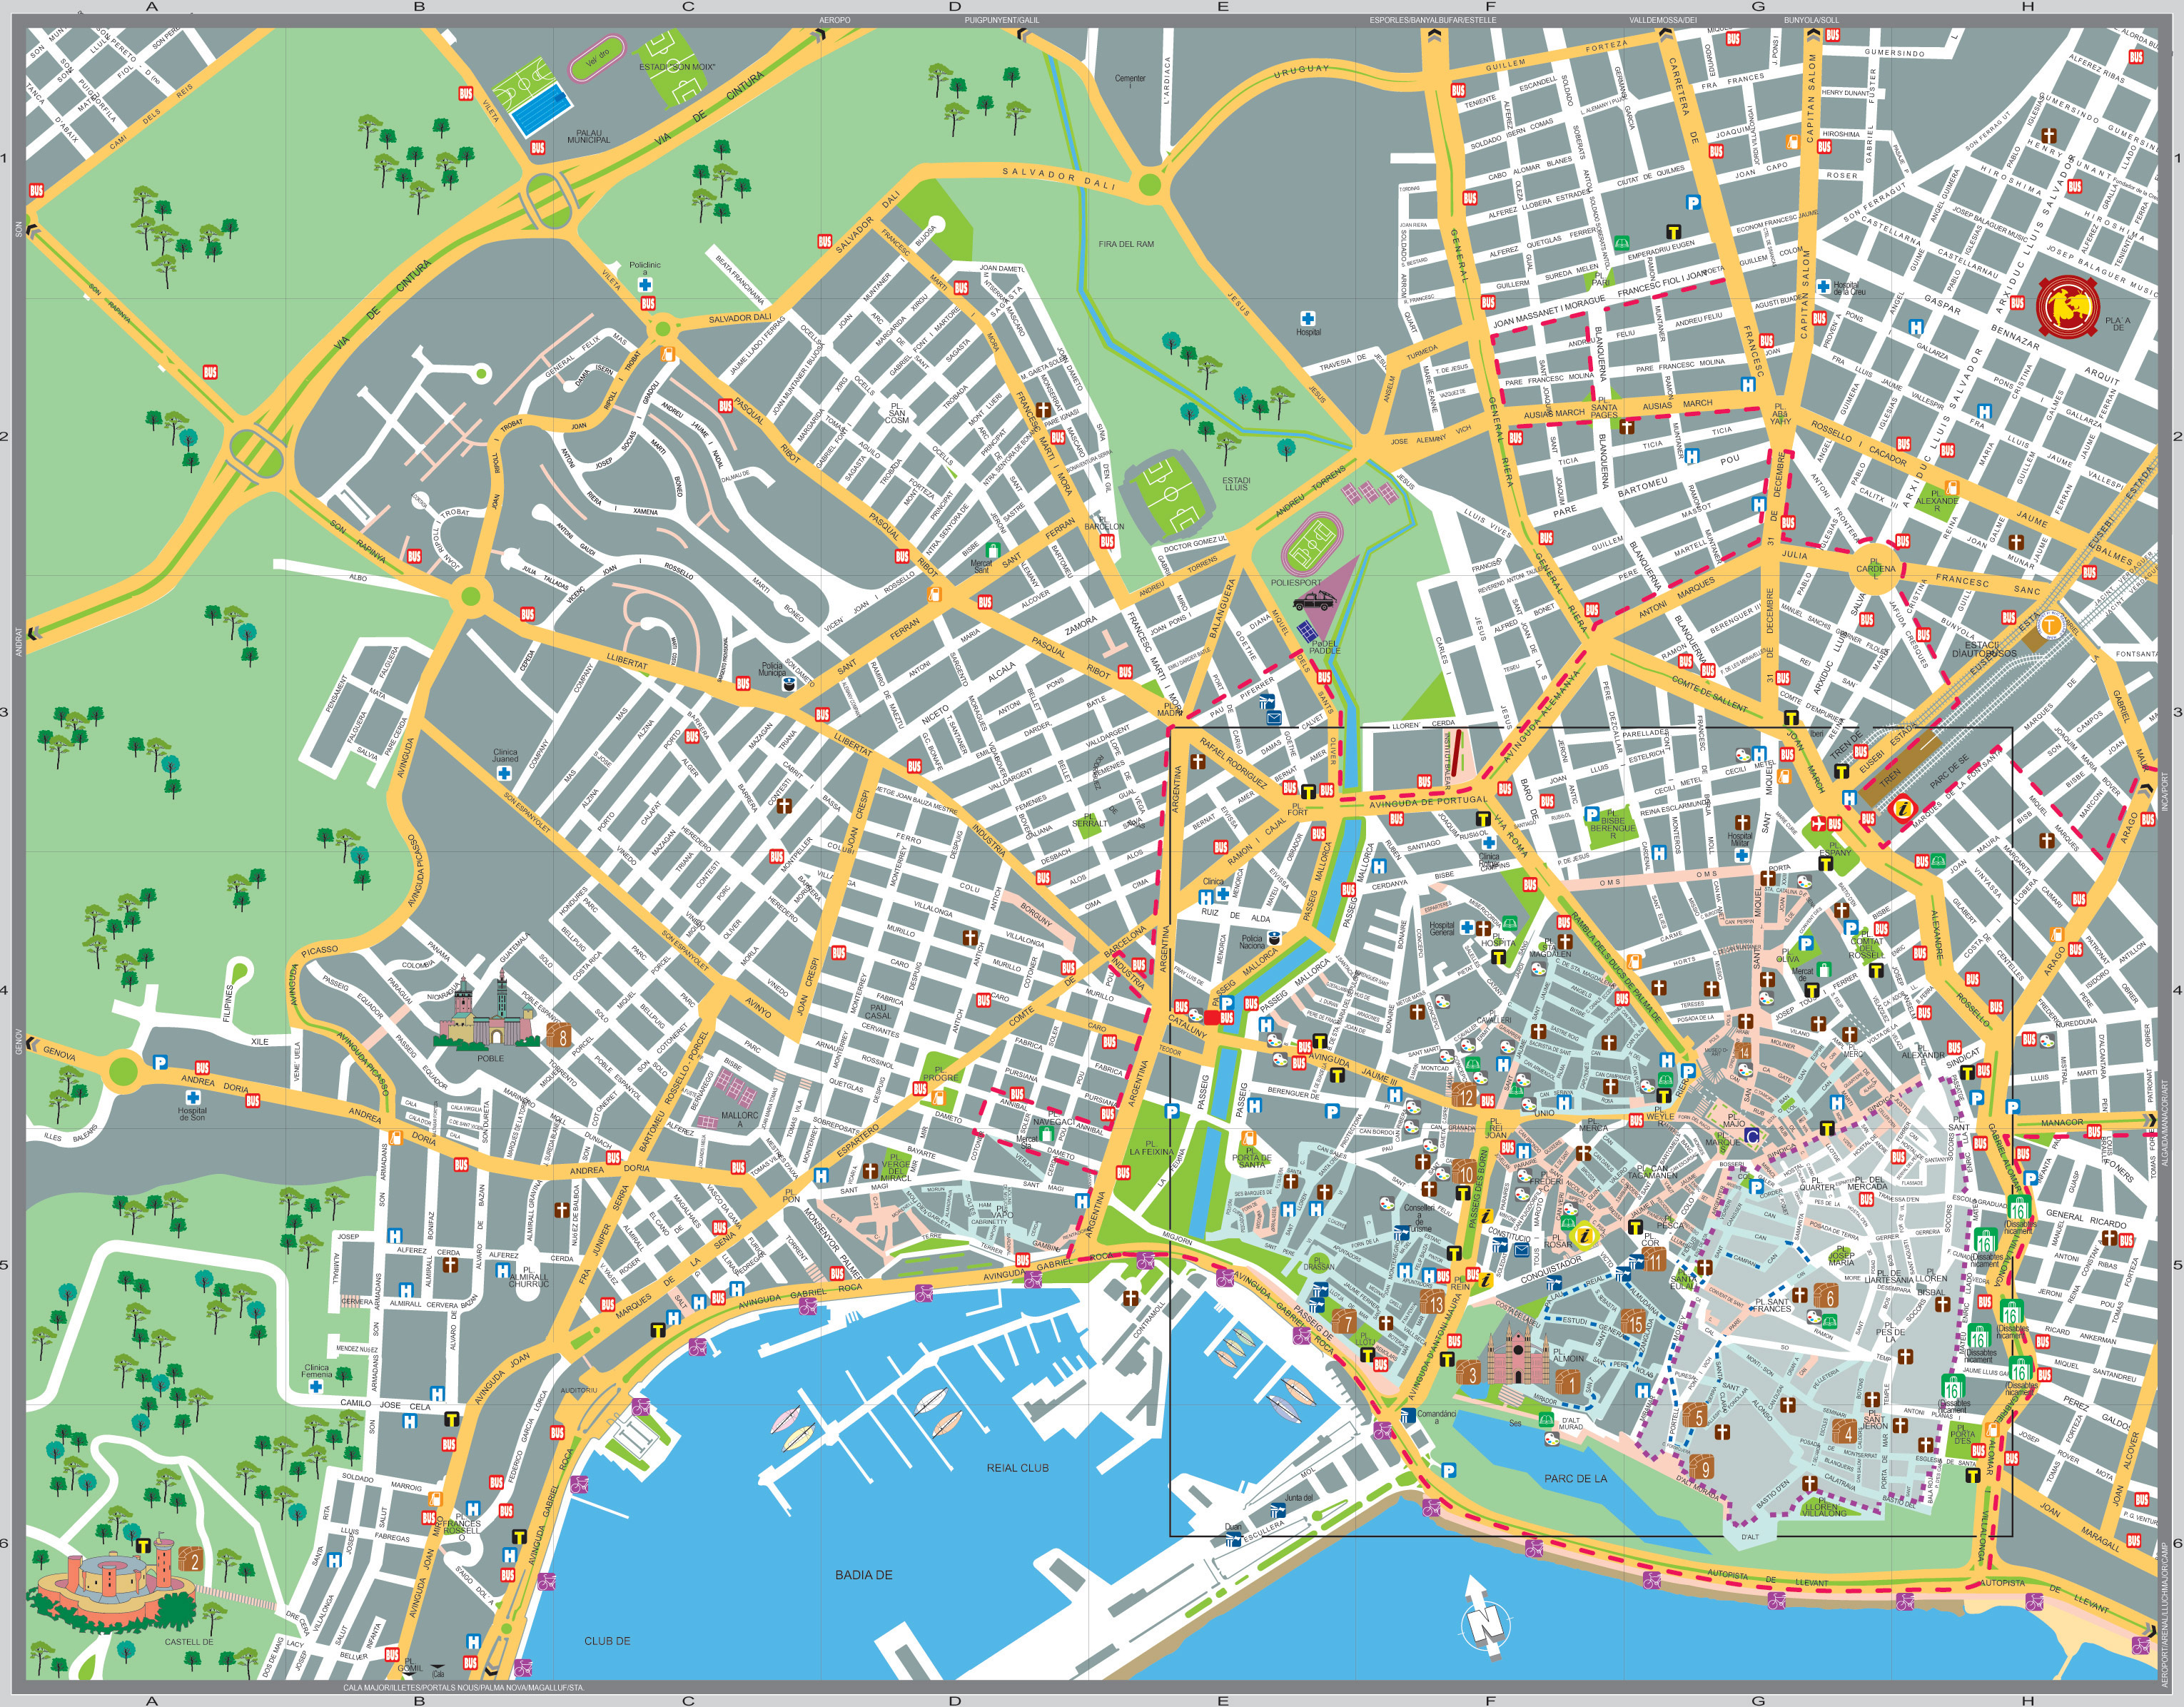 Interactive Map Of The City Of Palma De Mallorca